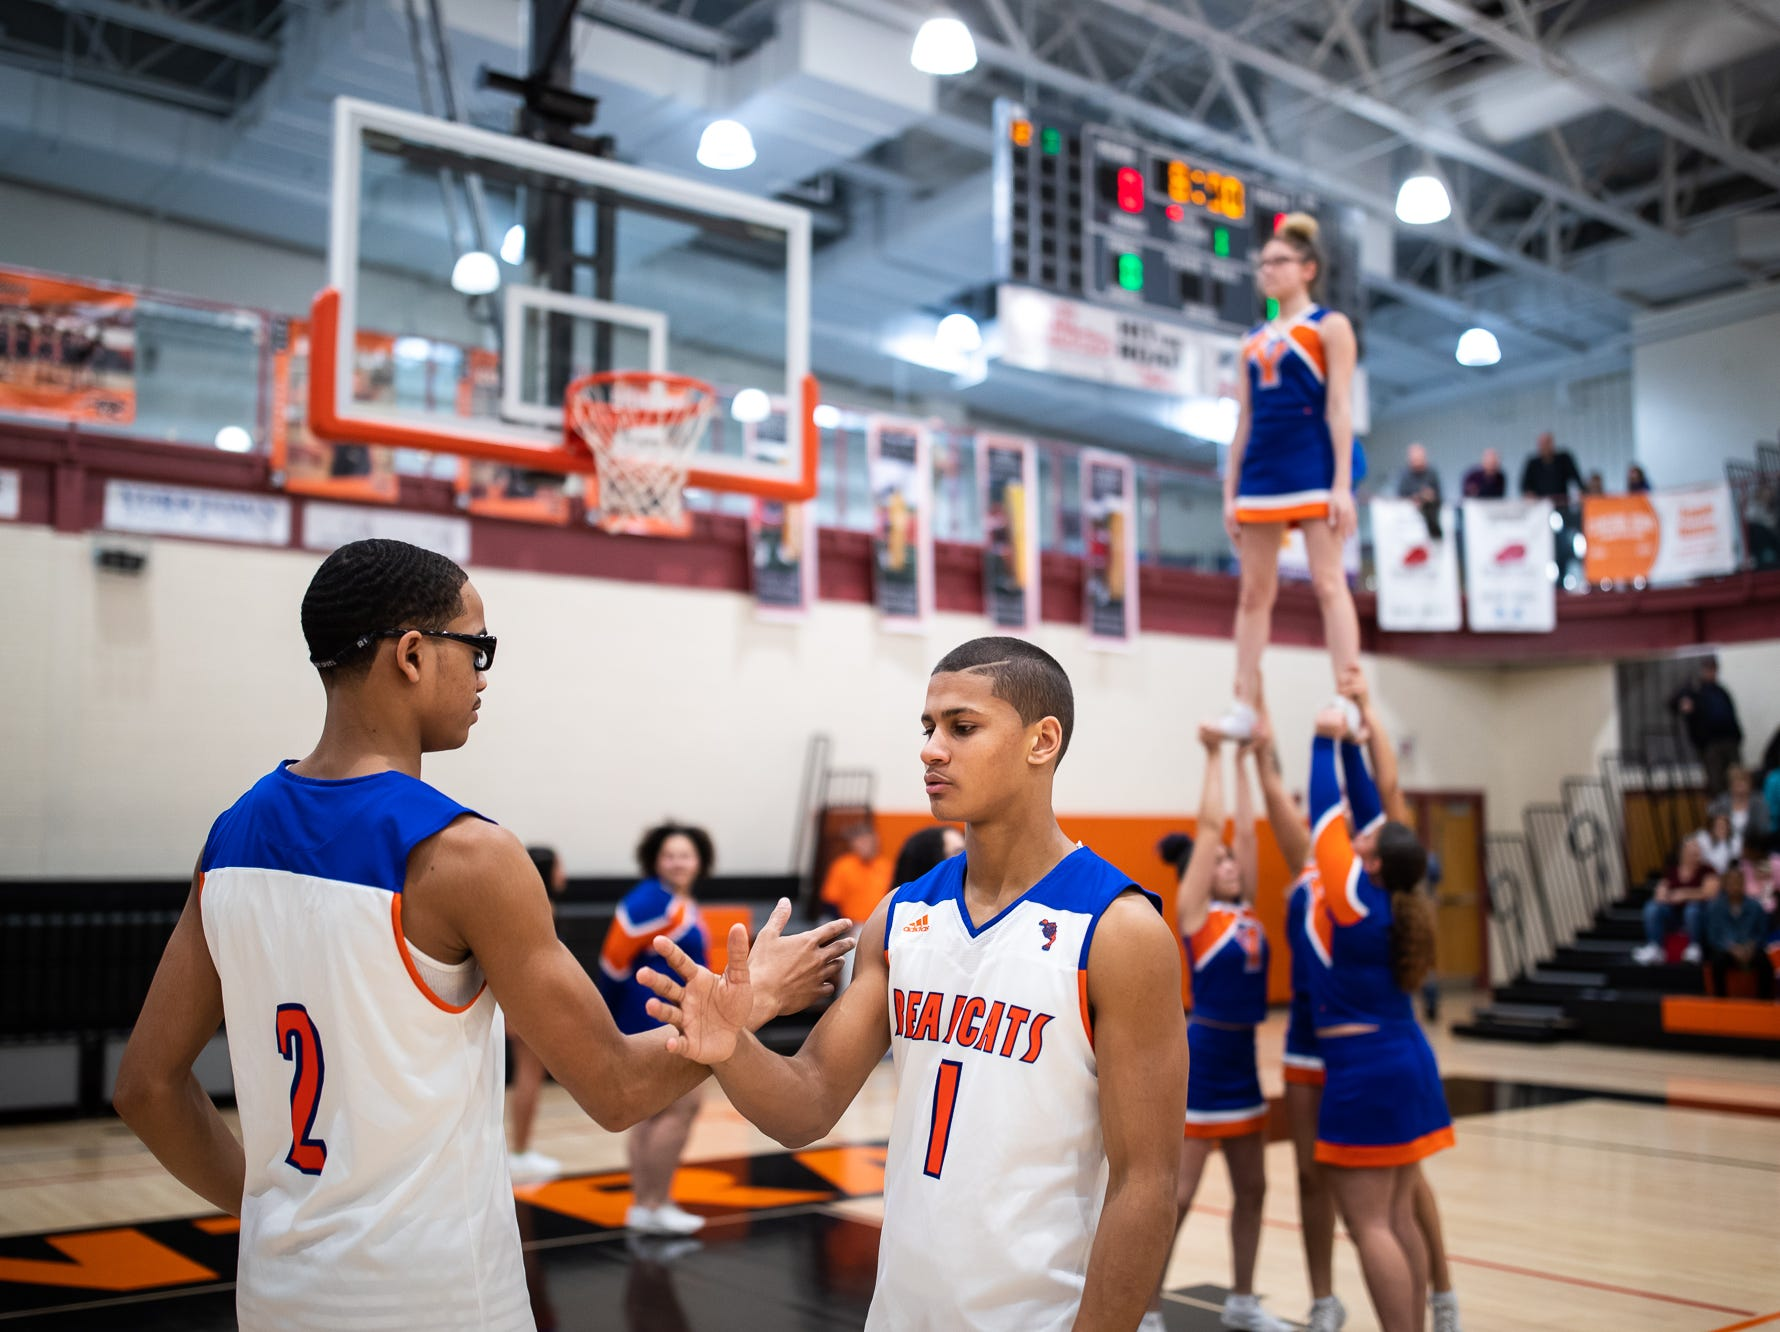 York High's Cameron Gallon (2) is introduced by York High's Tobee Stokes (1) during the first half of a YAIAA quarterfinal between York High and Dover, Saturday, Feb. 9, 2019, at Central York High School. West York led Dover 48-35 at the half.